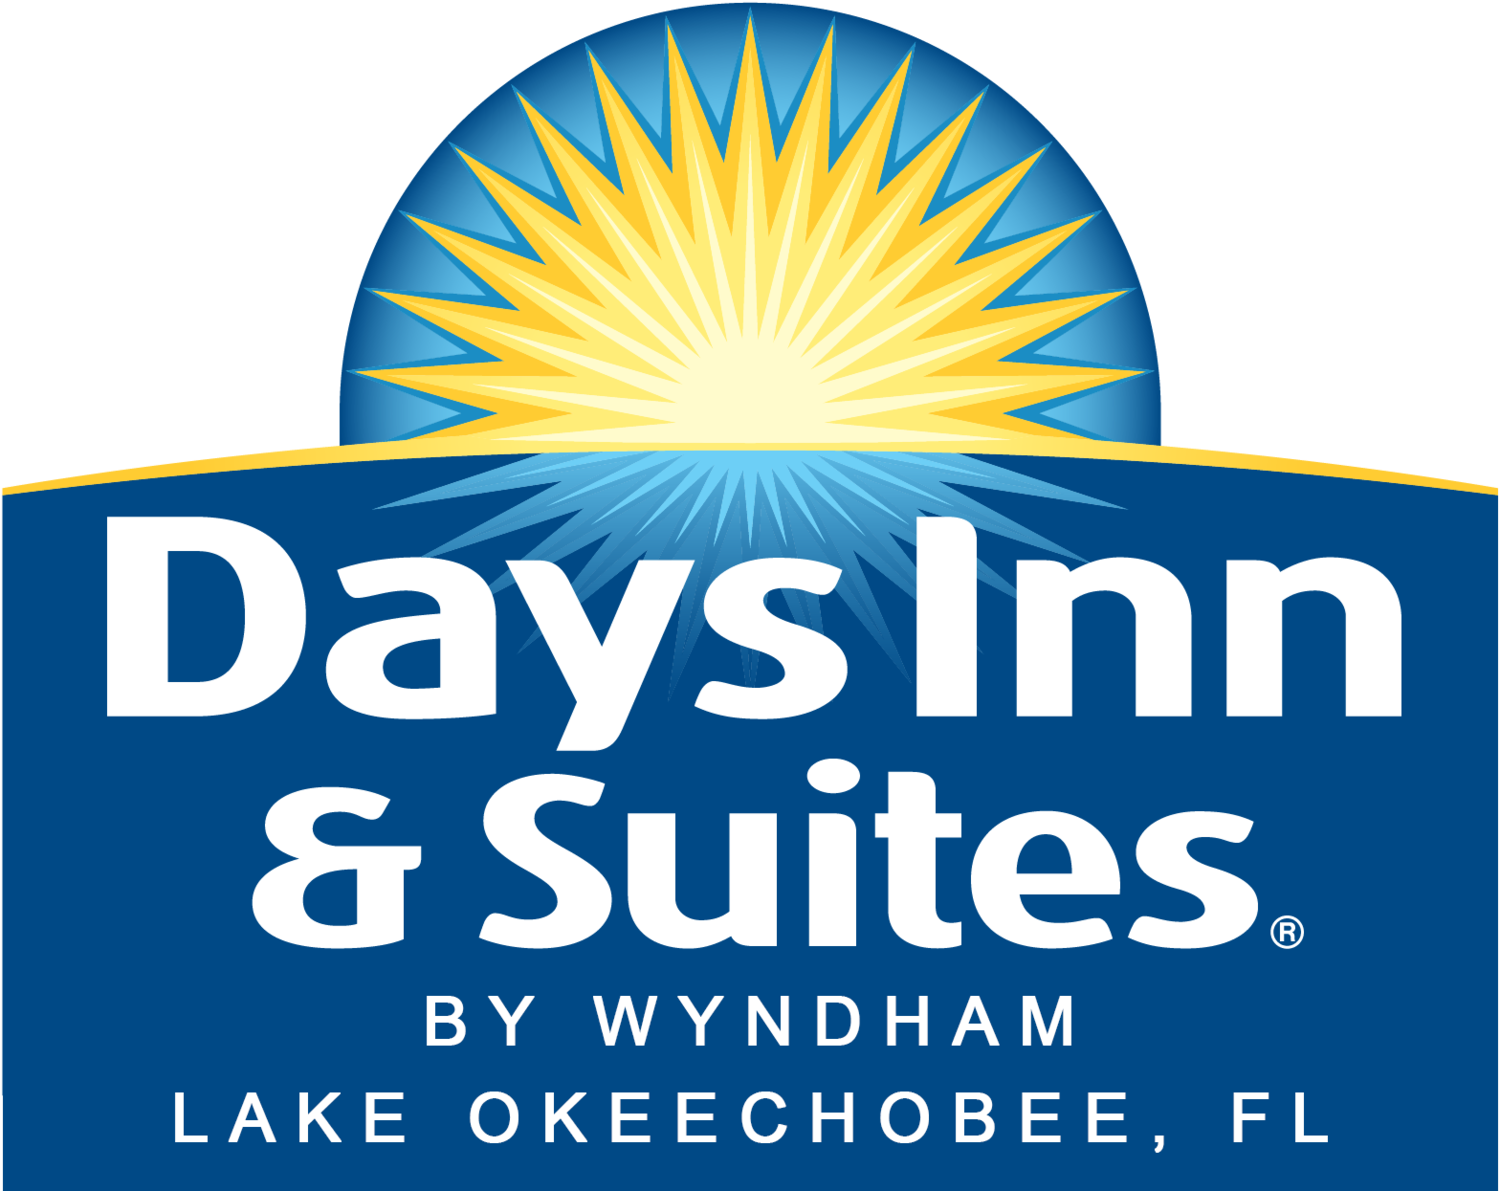 Days Inn & Suites by Wyndham Lake Okeechobee